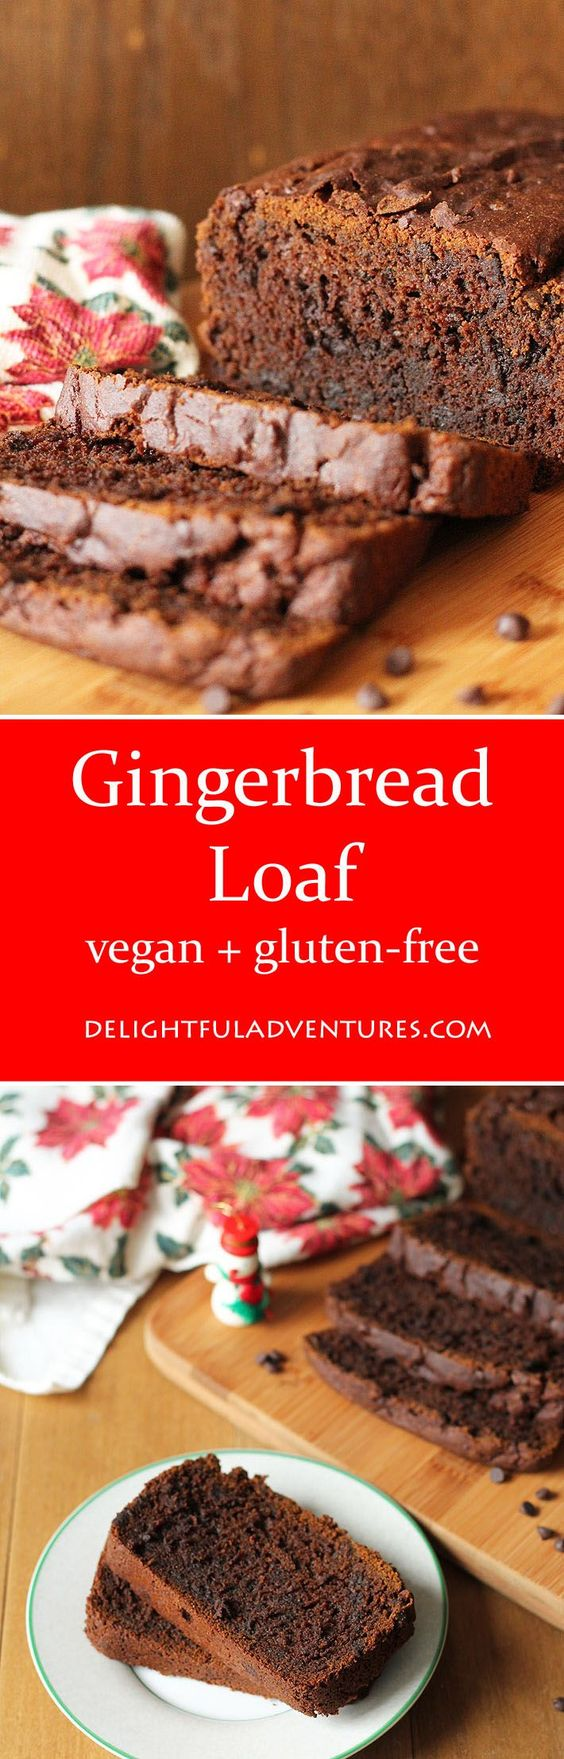 This Vegan Gluten Free Gingerbread Loaf is perfectly spiced & will become a fave during the holidays. A great recipe to make and give (or enjoy yourself!).